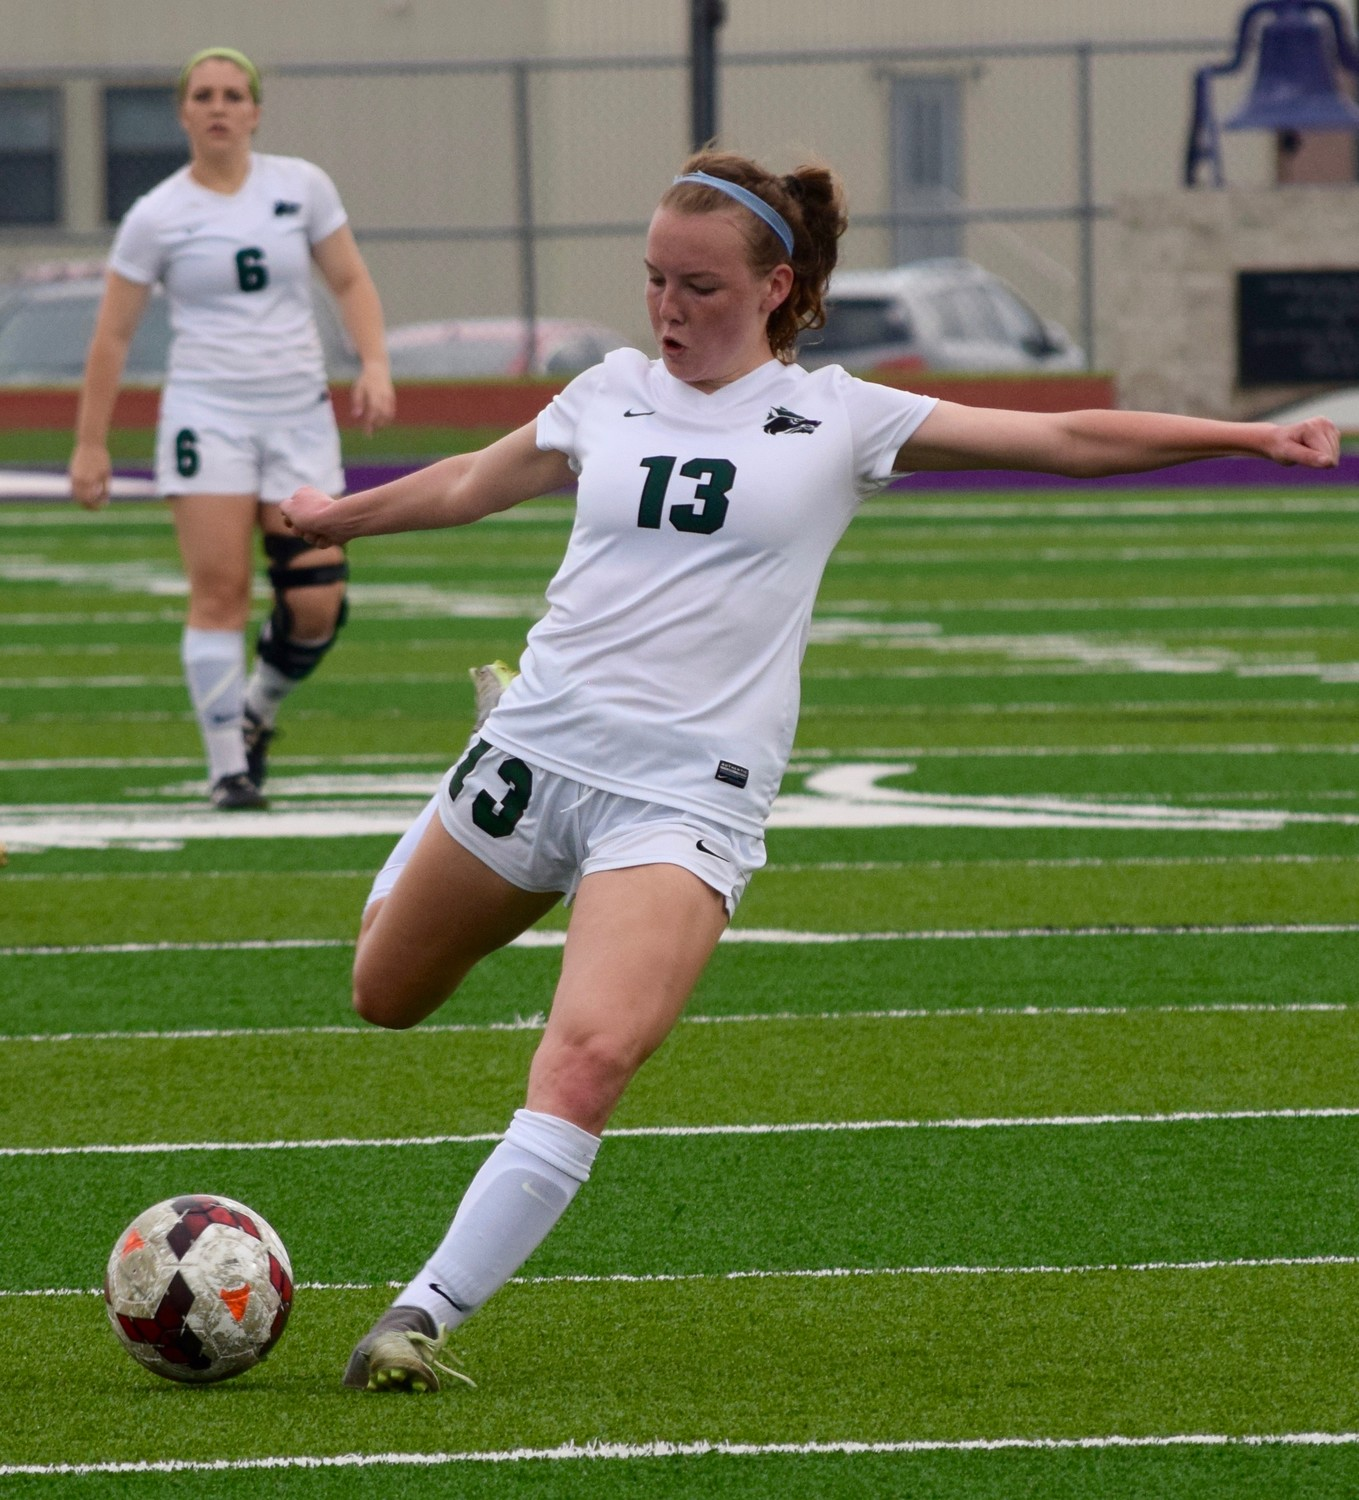 Ellie Carr and Cedar Park beat College Station 2-1 in the third round of the playoffs Tuesday night.